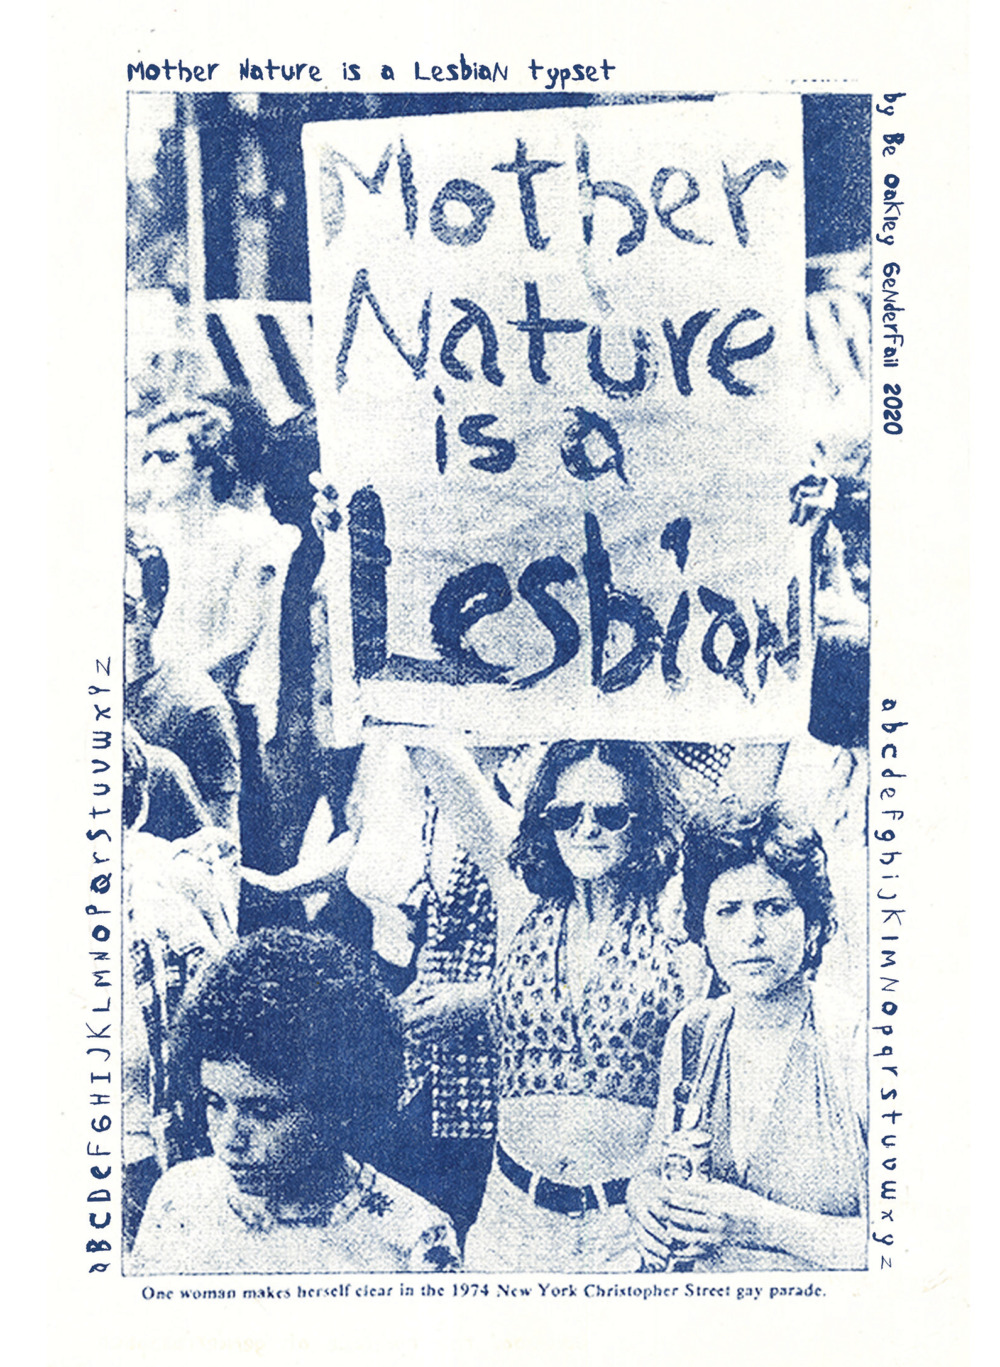 "The page contains a blue-tinted photograph of a woman holding up a protest sign that reads ""Mother Nature is a Lesbian."" The photograph has a caption that reads ""One woman makes herself clear in the 1974 New York Christopher Street gay parade."" The letters of the alphabet frame the photograph on both its sides."